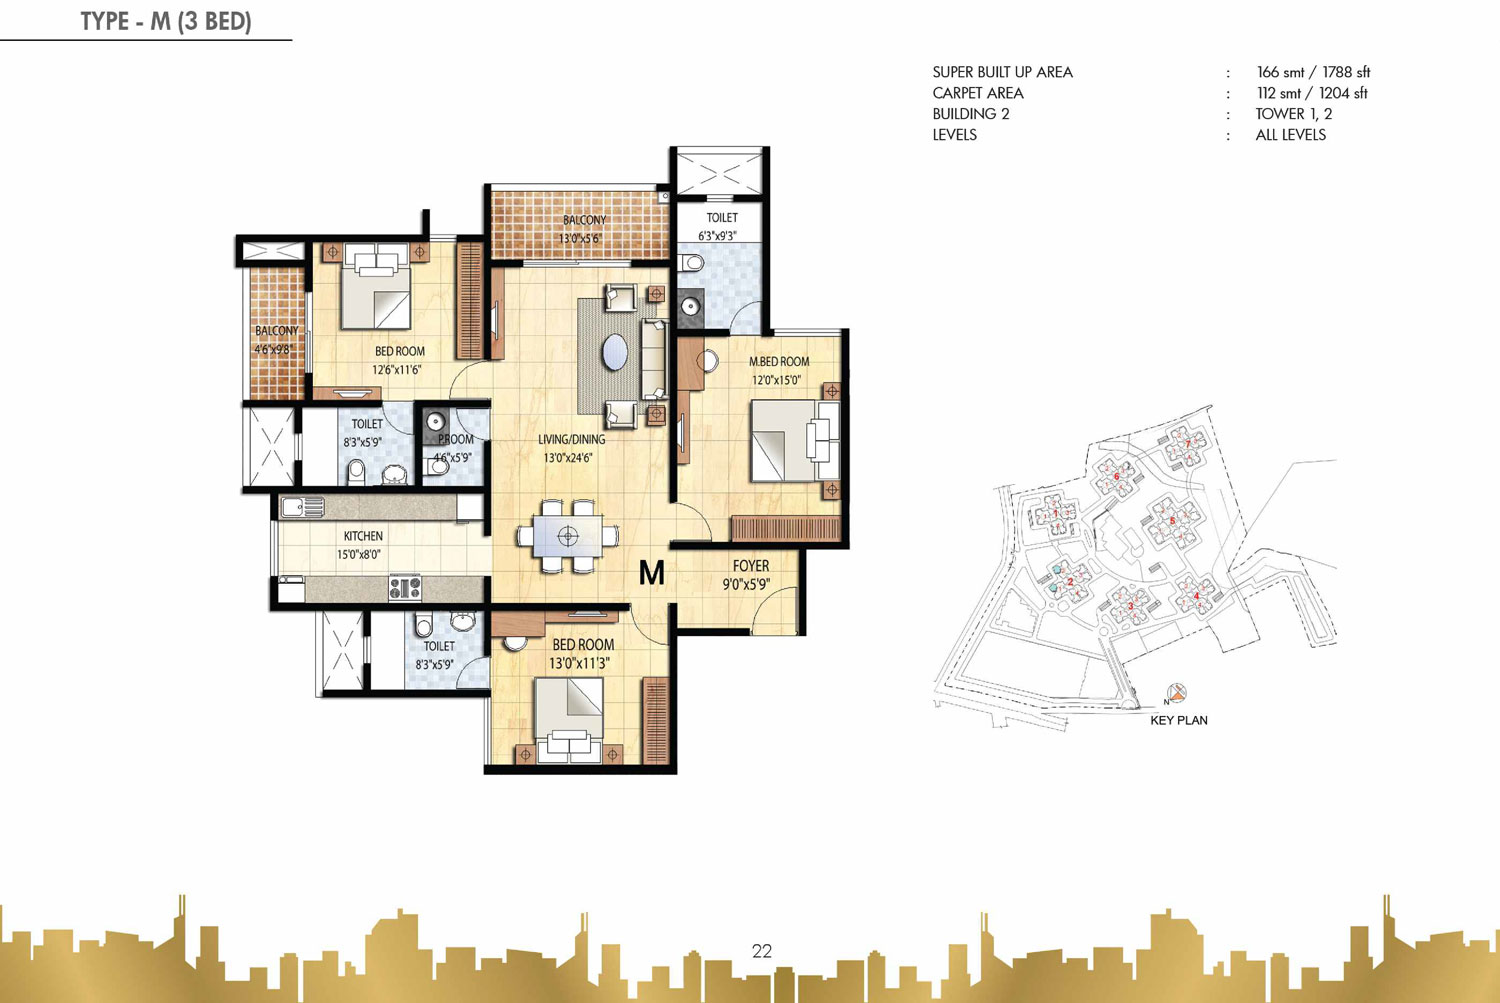 Type M - 3 Bed - 1788 Sq Ft